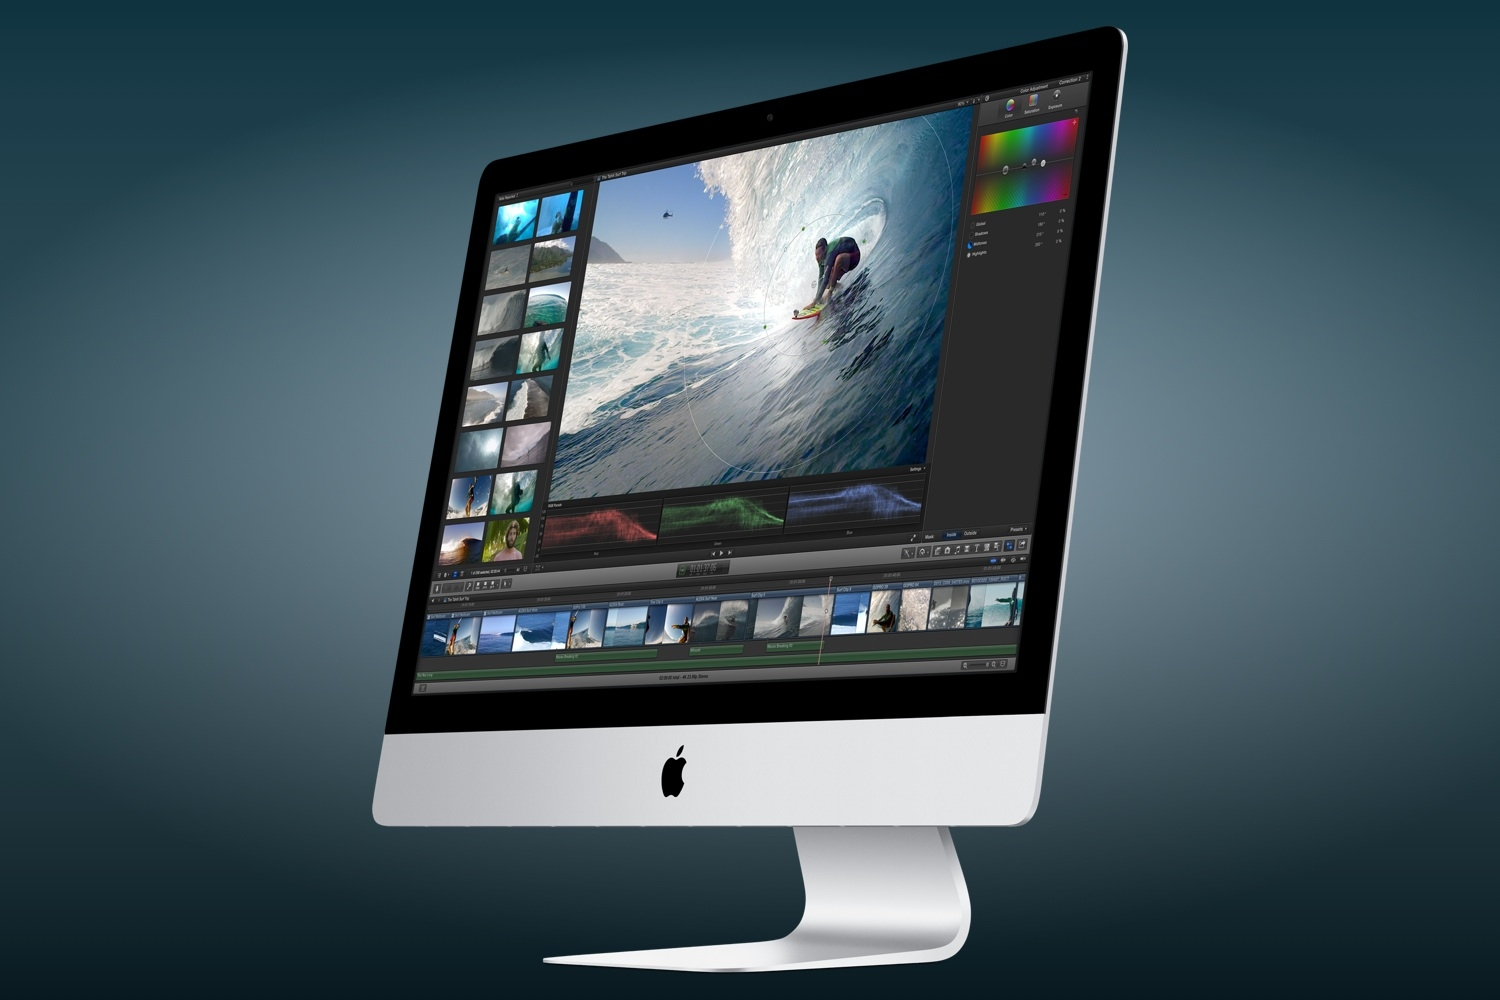 5 Tasks That Apple's 5K iMac Will Revolutionize